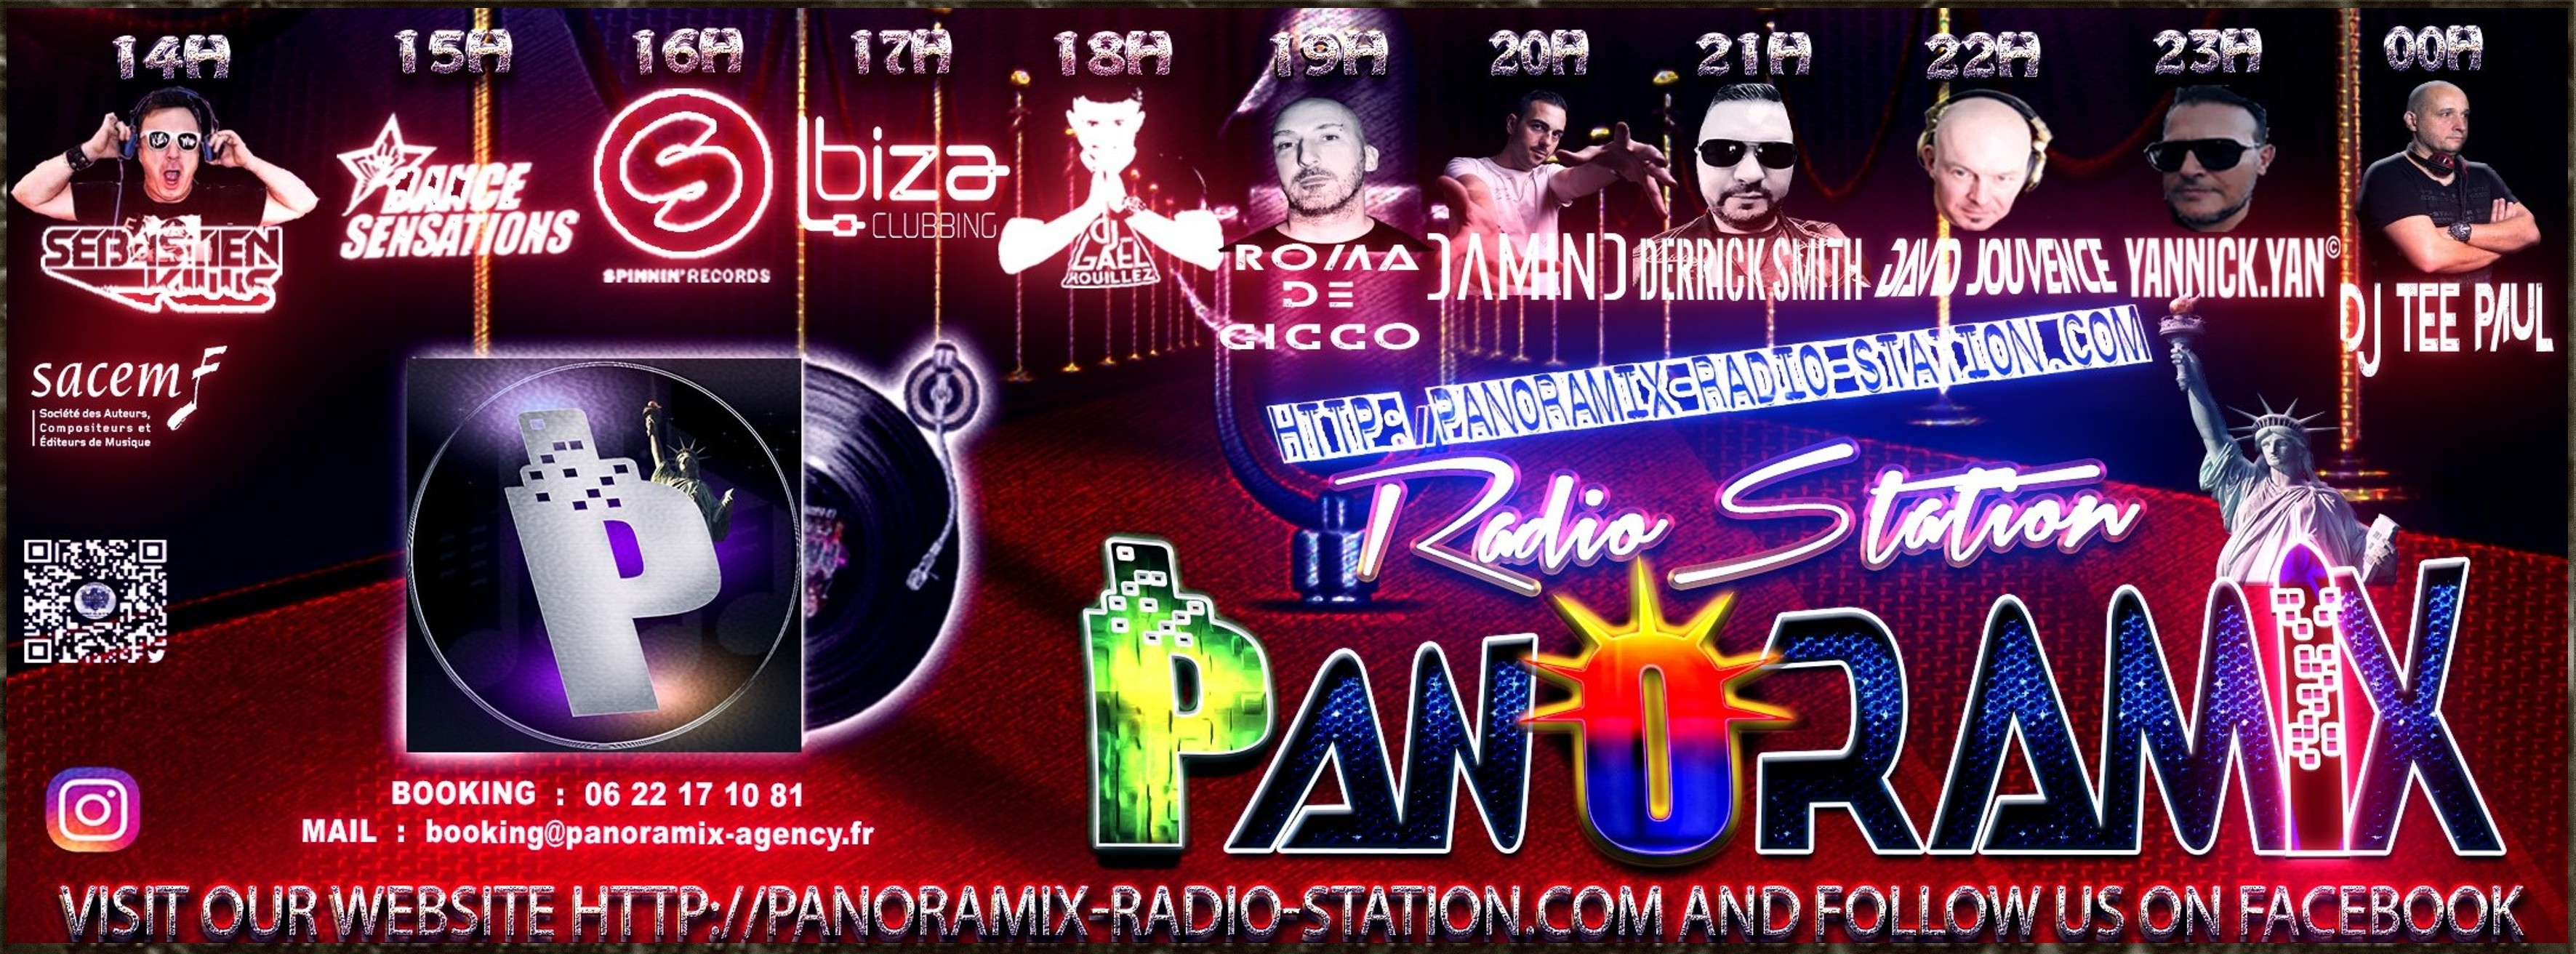 http://panoramix-radio-station.com/wp-content/uploads/2018/06/couverture.jpg